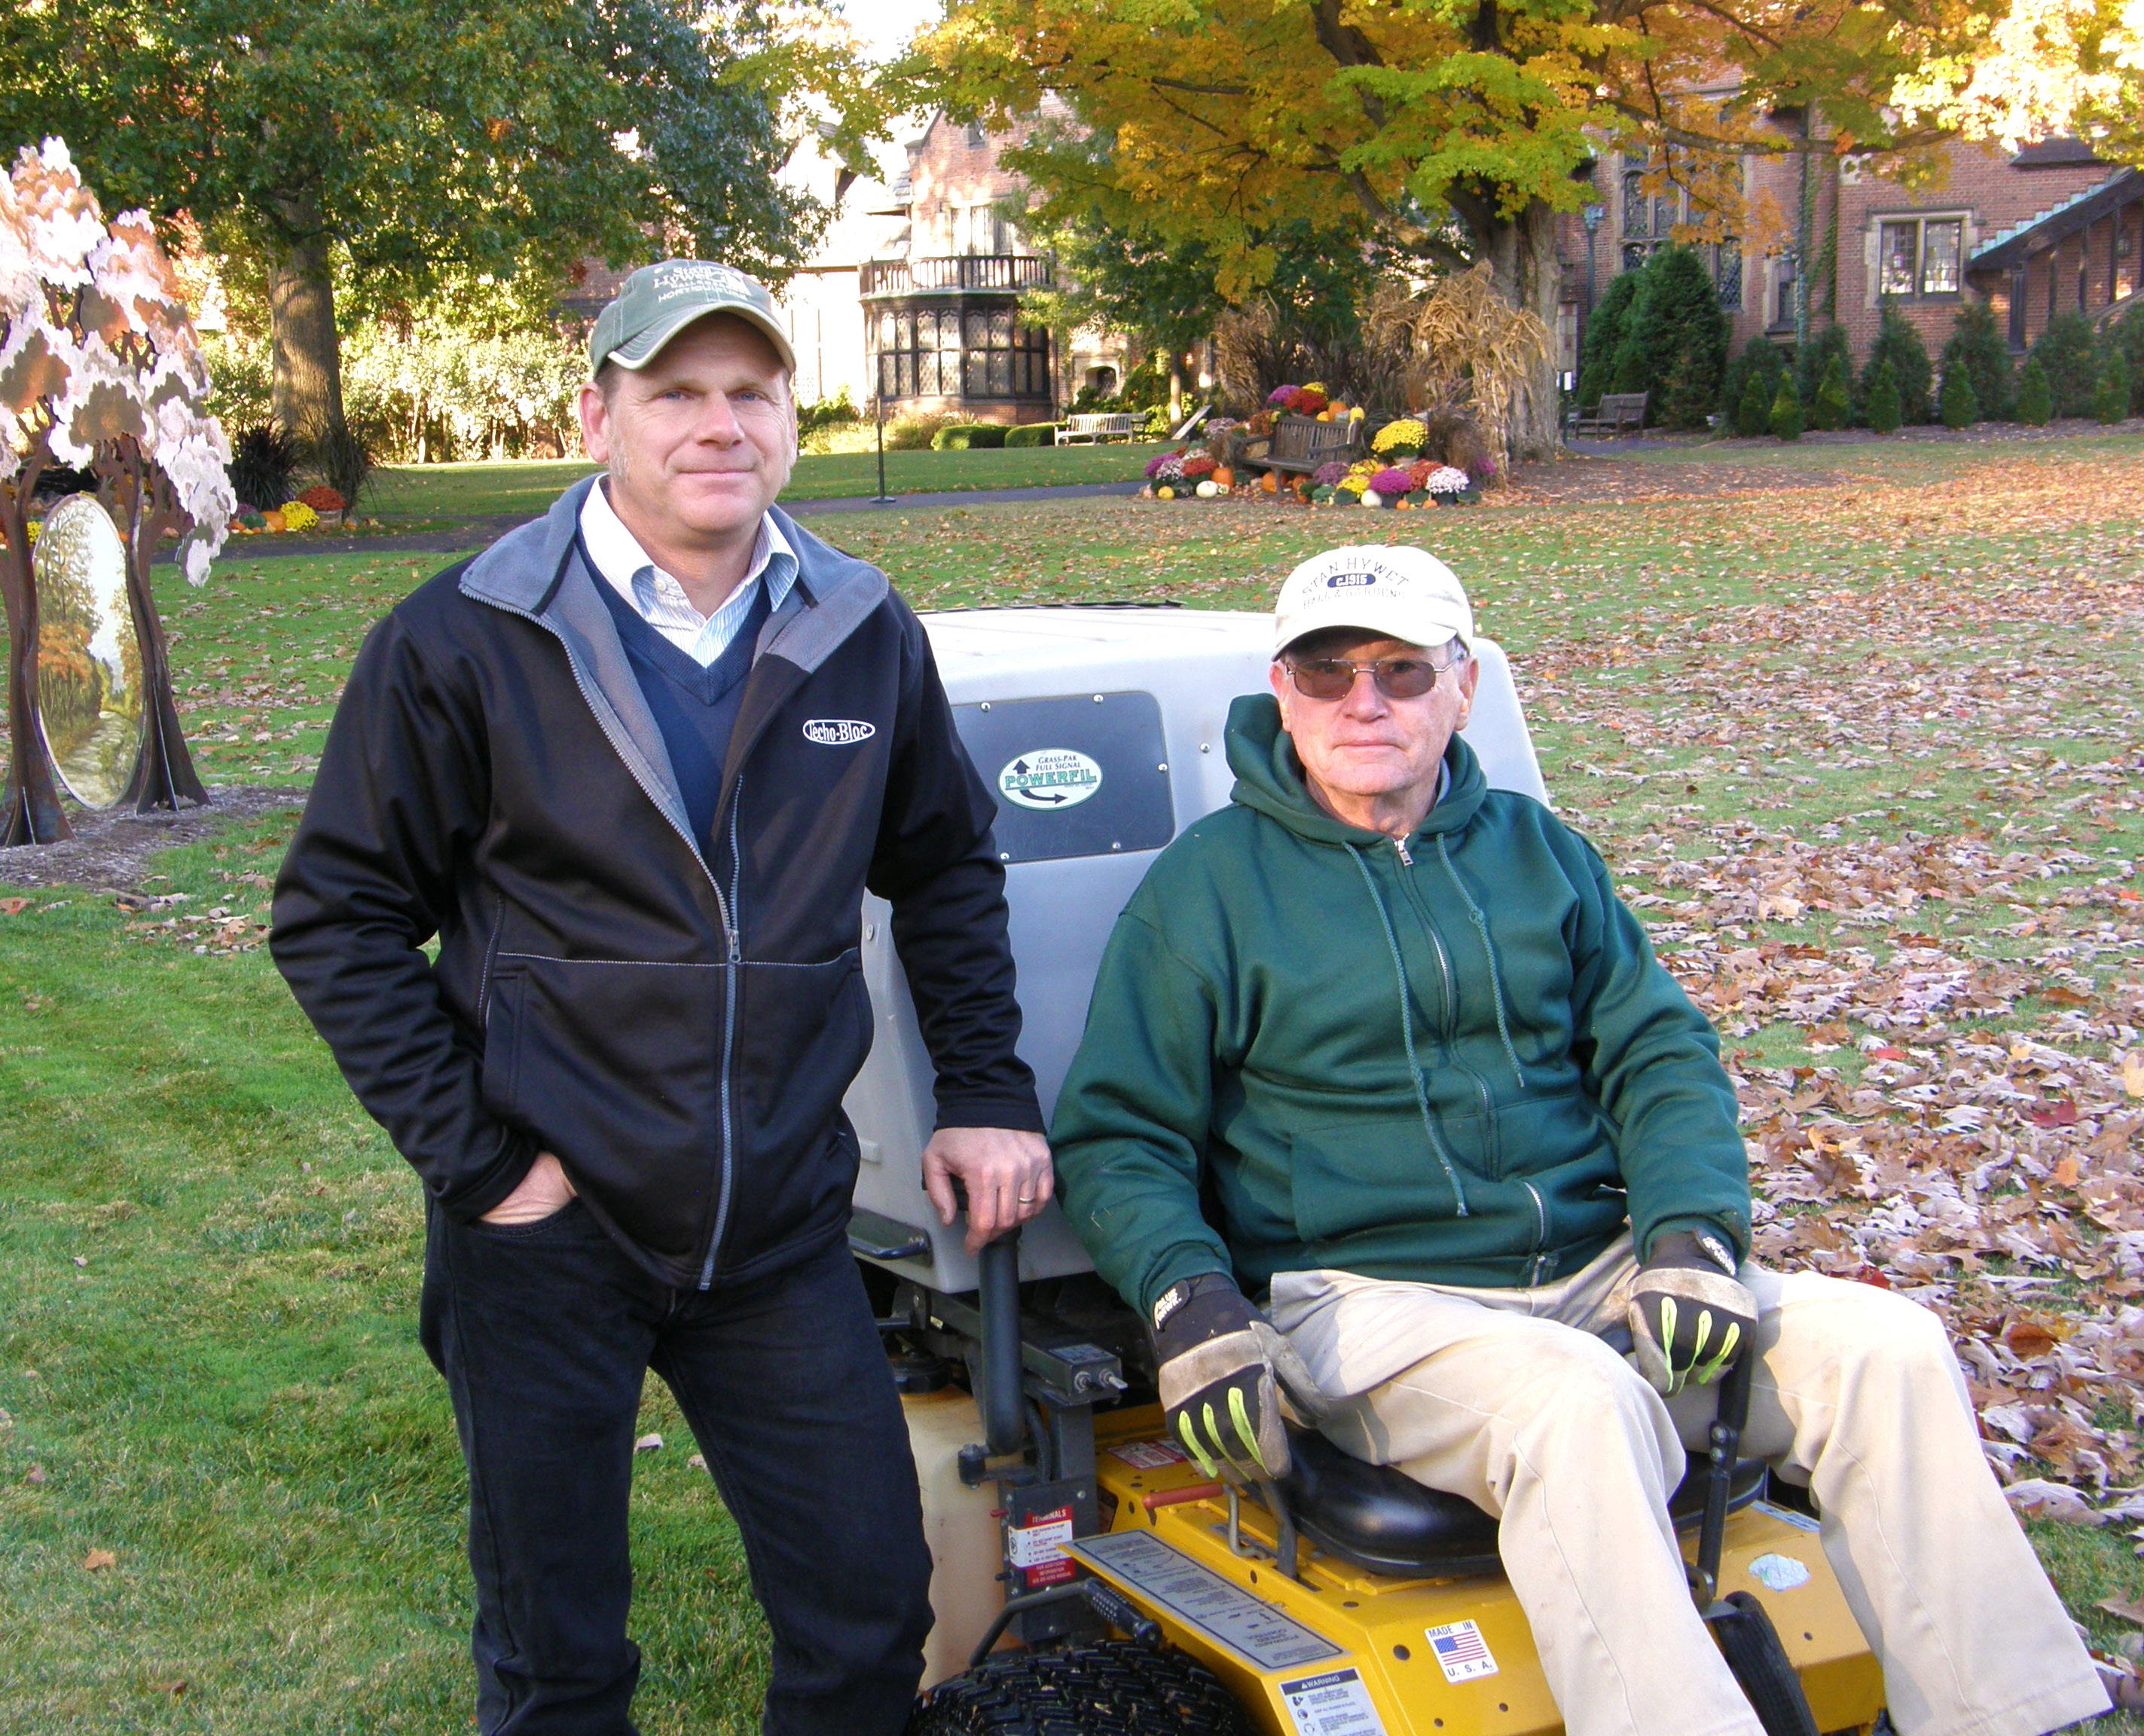 Tom Hrivnak and a volunteer with the Walker Mower